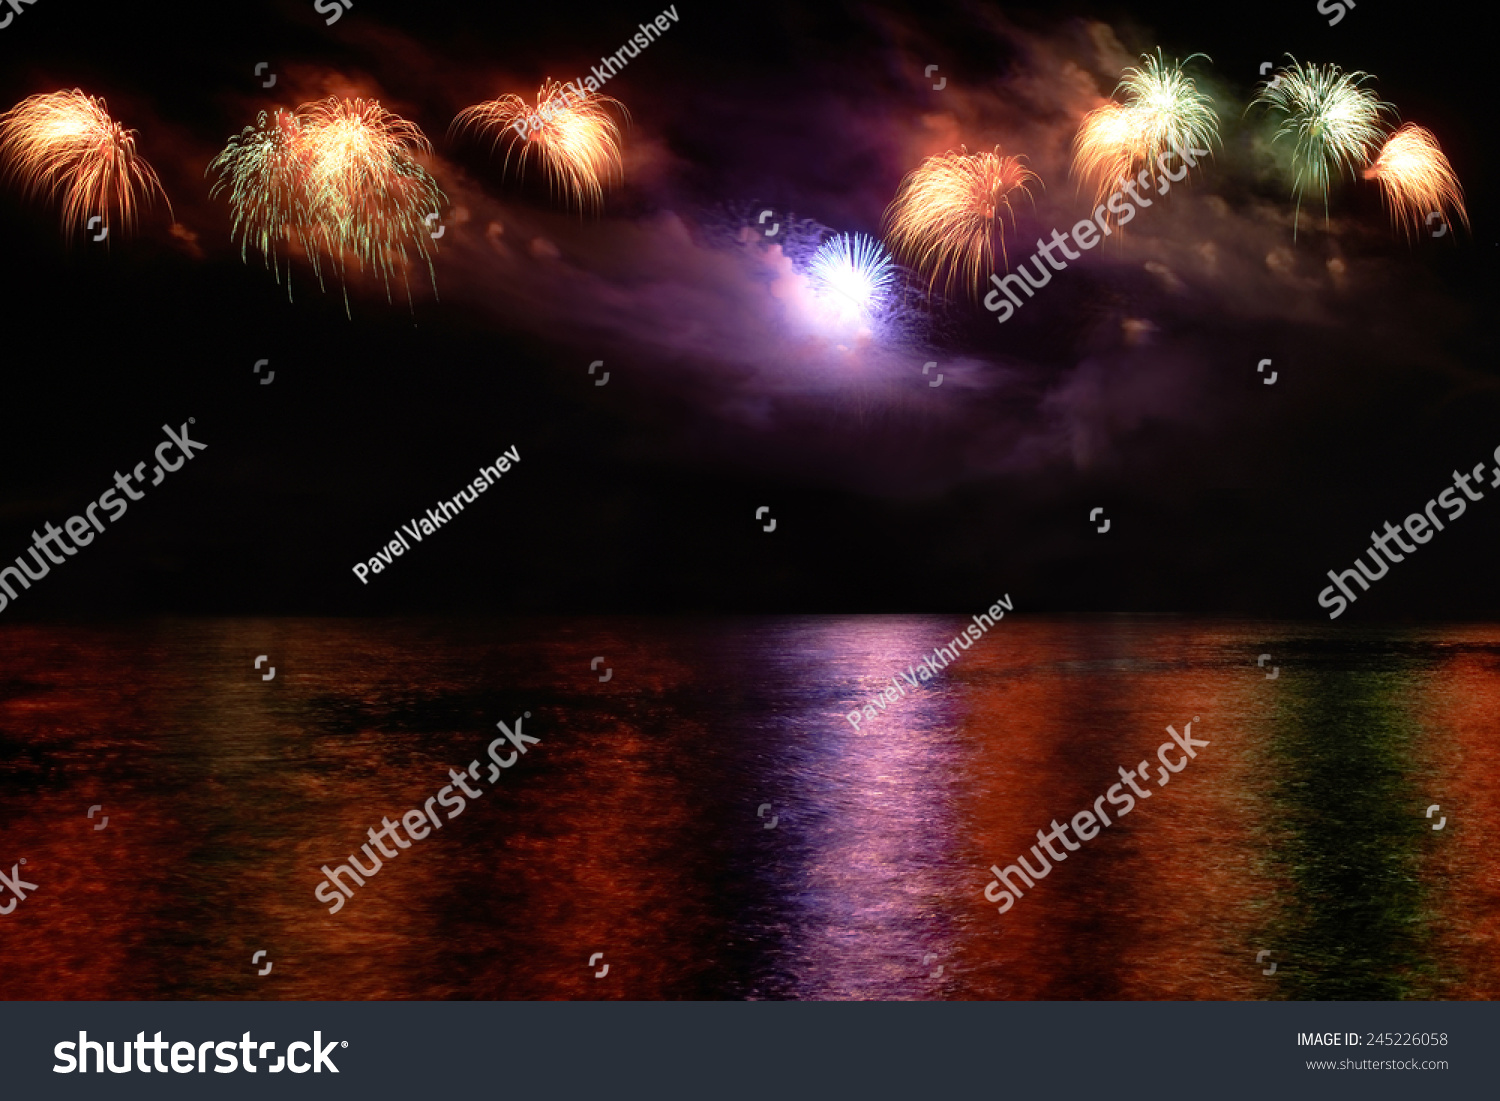 Wallpaper Salute Sky Holiday Colorful 3376x4220: Colorful Fireworks On Black Sky Background Stock Photo